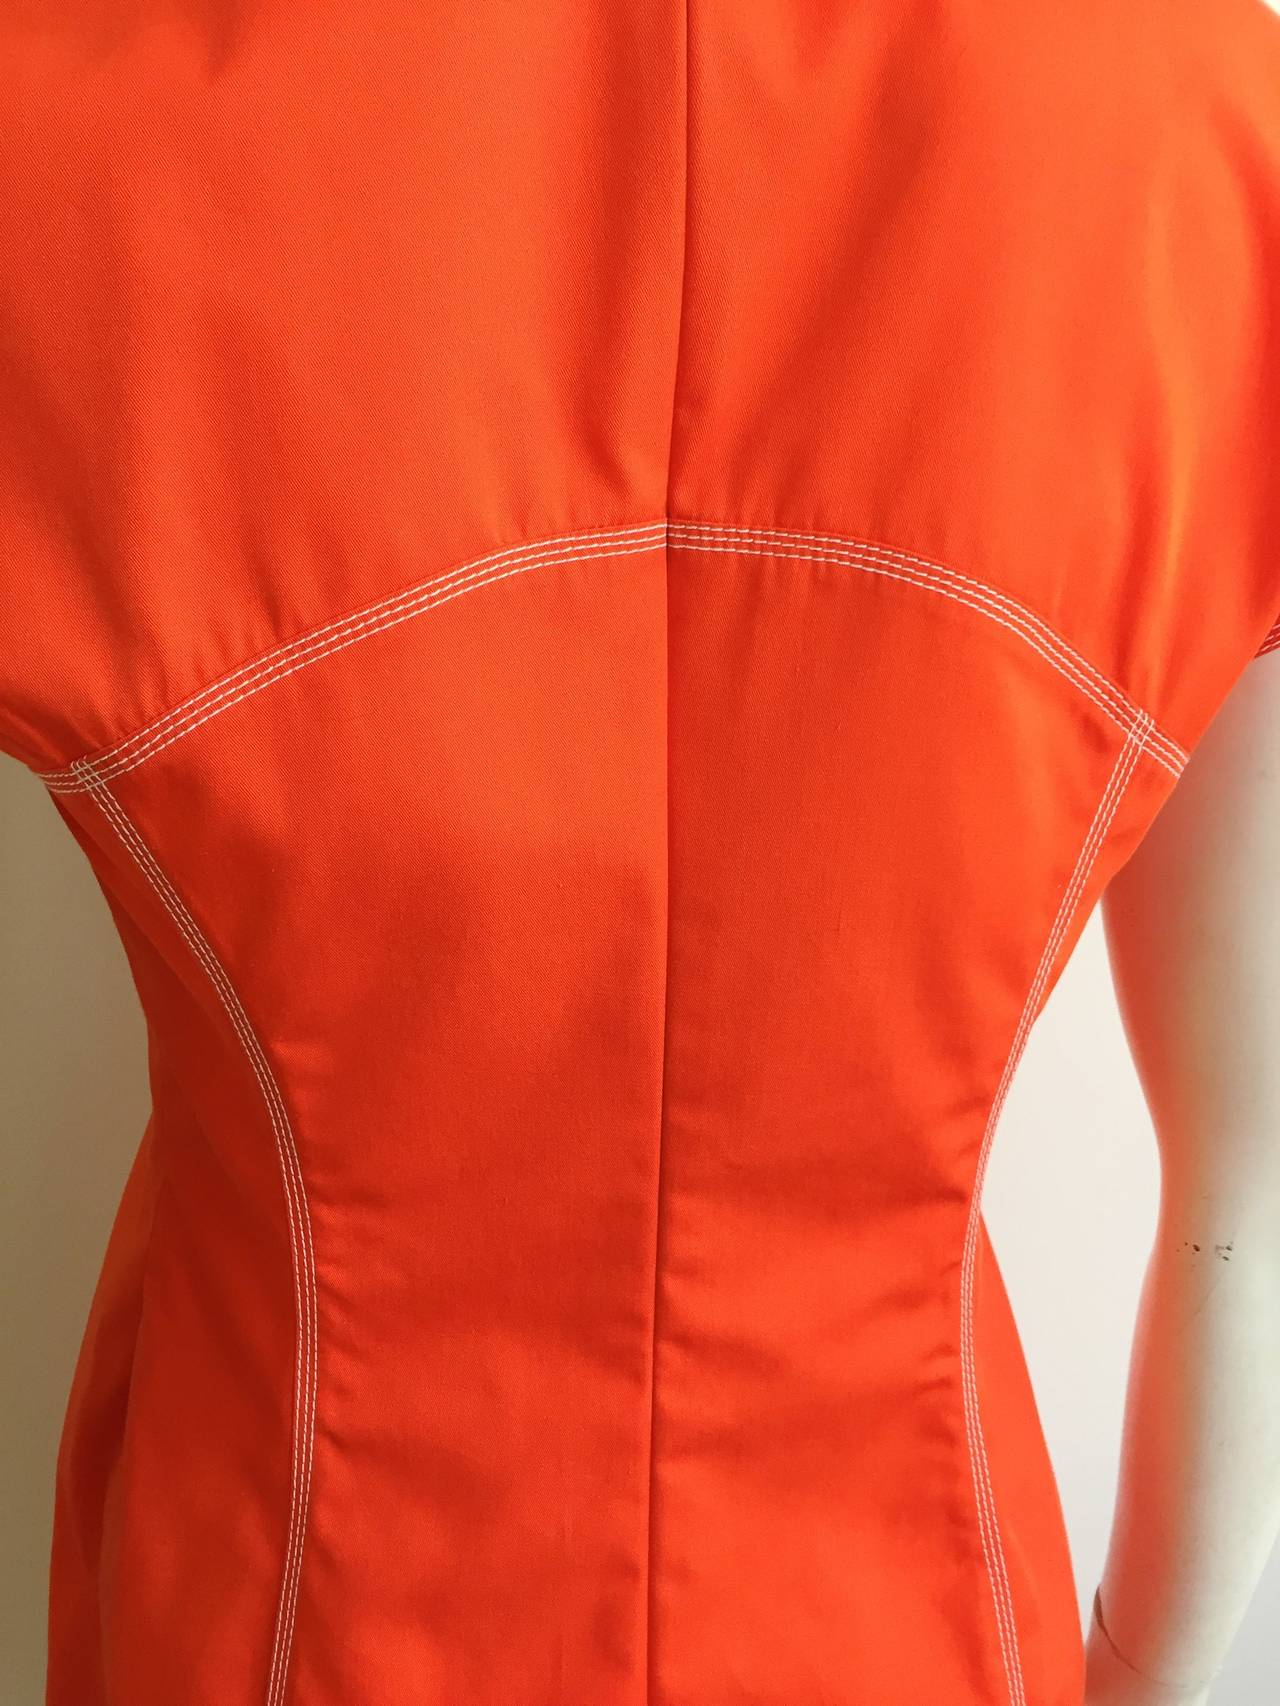 Courreges Paris Dress With Pockets Size 8, 1980s For Sale 3